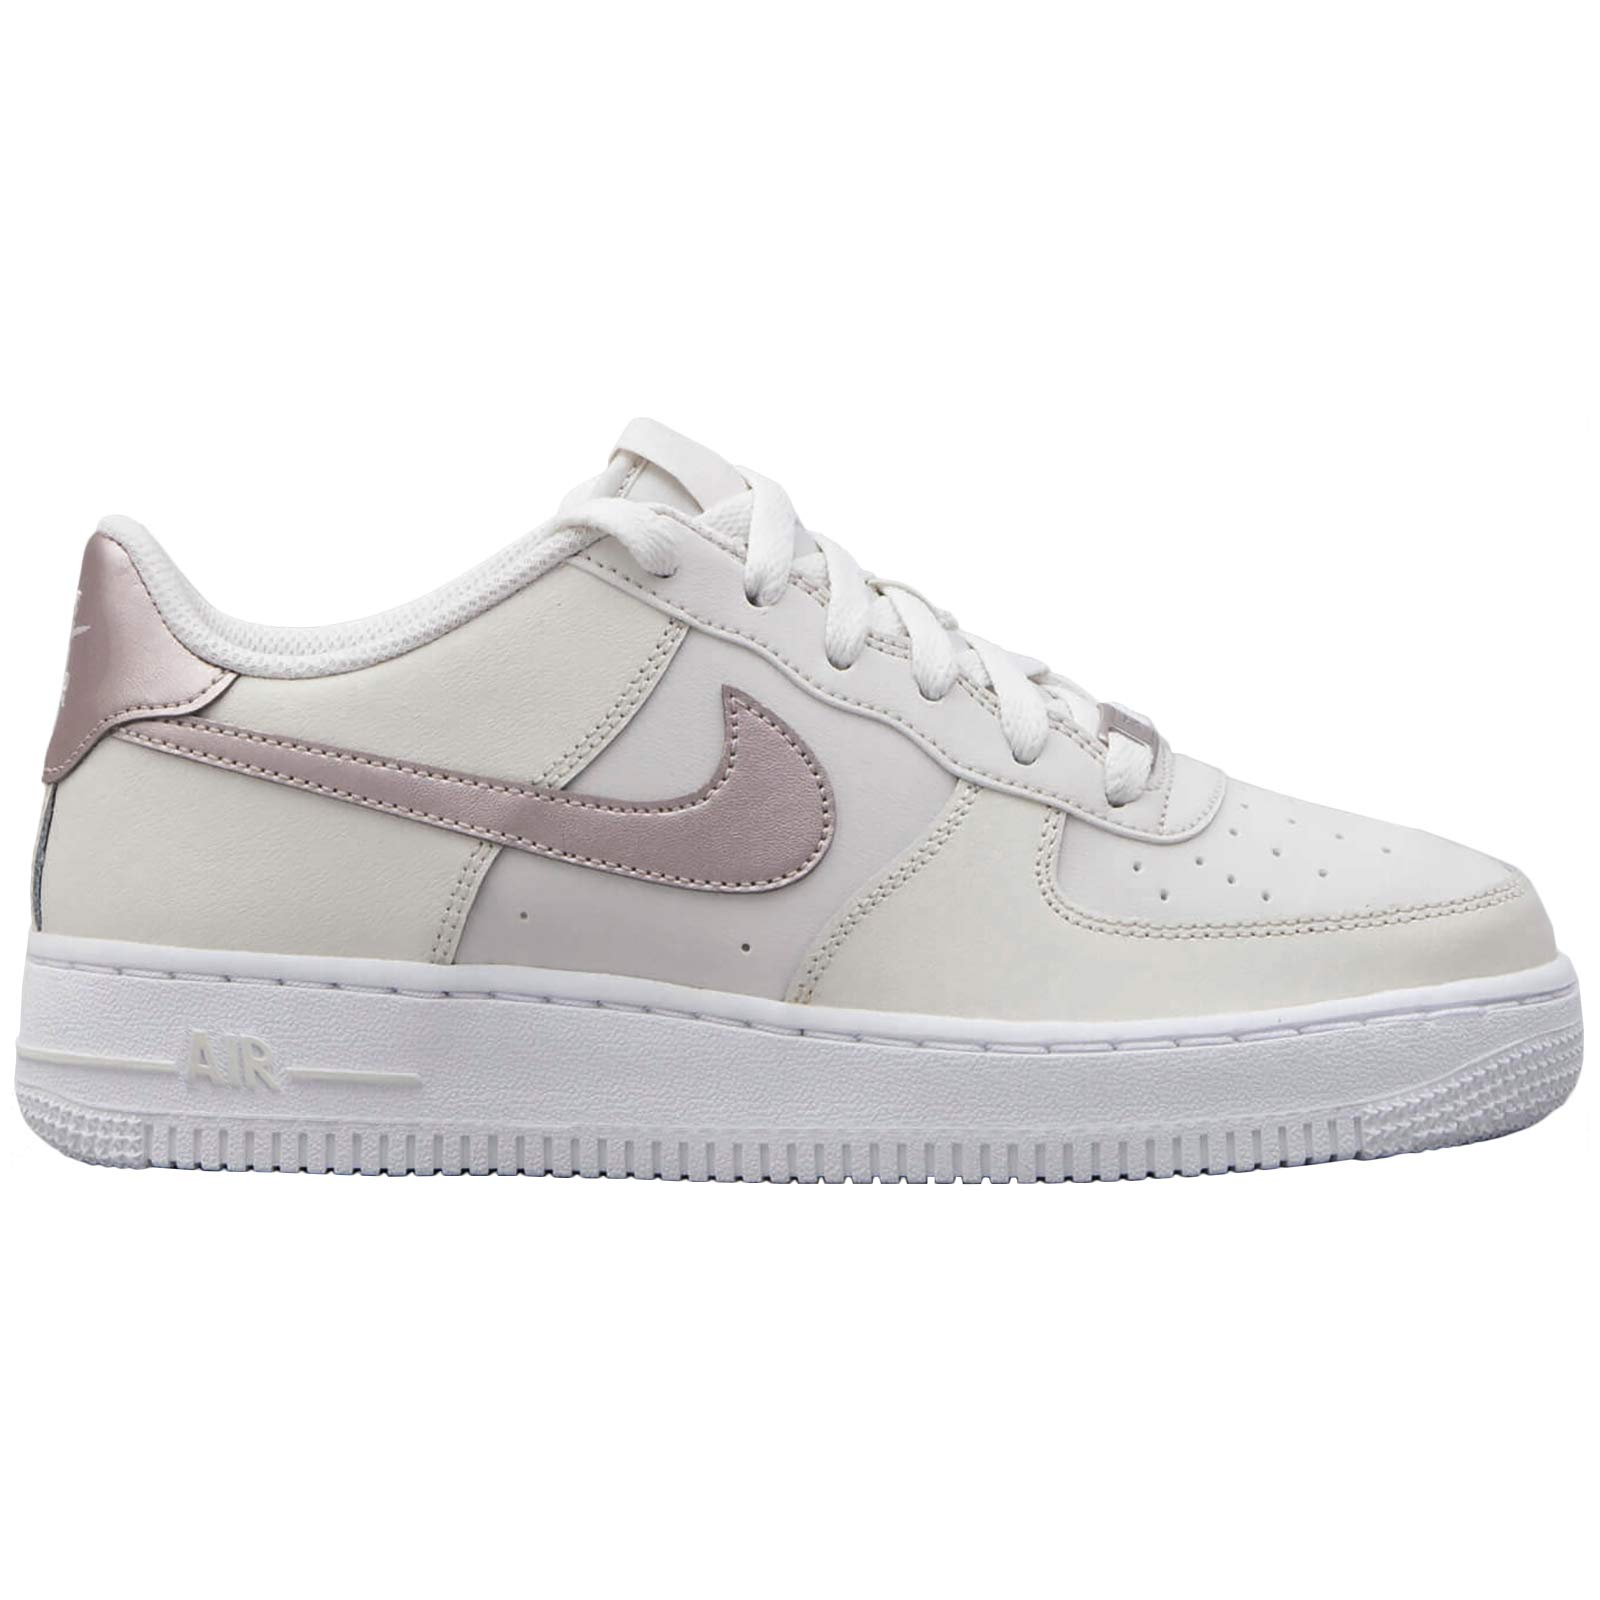 wholesale dealer a9c78 64c53 Galleon - Nike Youth Air Force 1 Leather Synthetic Phantom Metalic ...